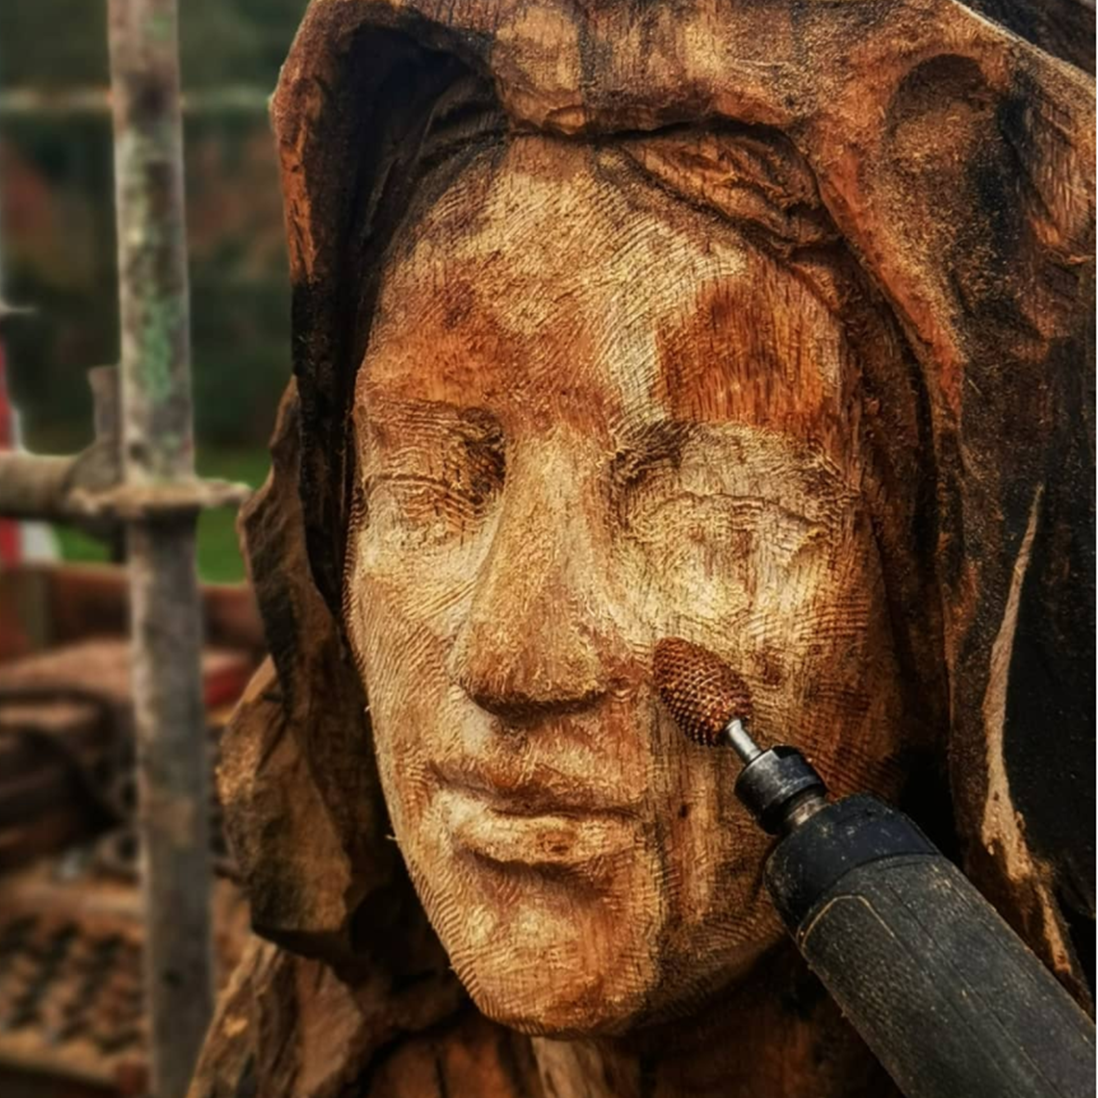 close up of a sculpture in process. the sculpture is a female face created by simon o'rourke and her face is being detailed using a daburrtooth flame bit, one of Simon's favourite tools for carving faces.